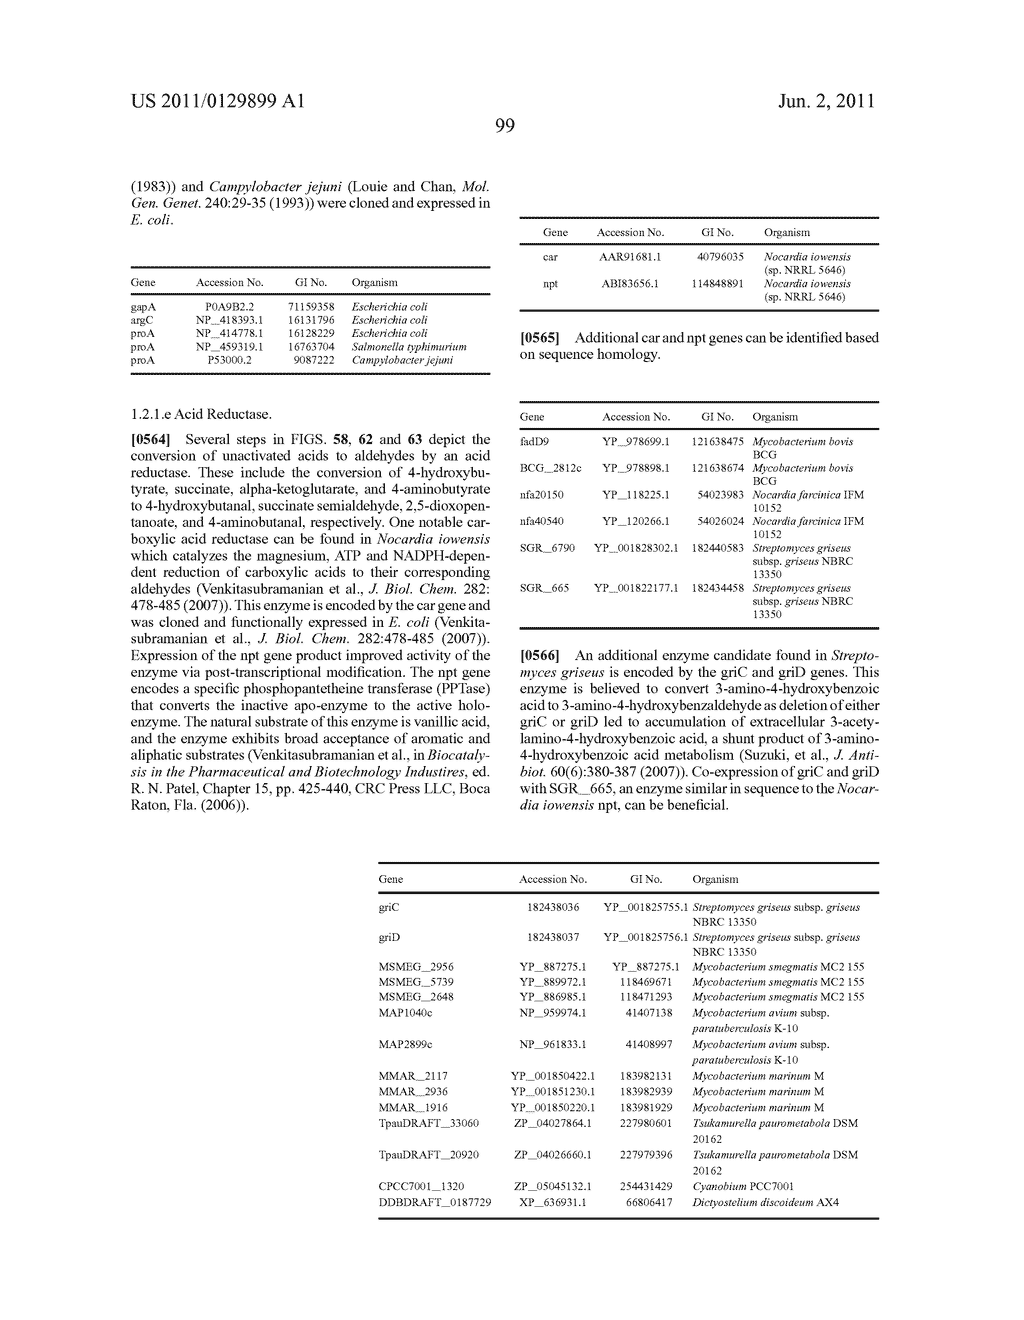 MICROORGANISMS FOR THE PRODUCTION OF 1,4-BUTANEDIOL, 4-HYDROXYBUTANAL,     4-HYDROXYBUTYRYL-COA, PUTRESCINE AND RELATED COMPOUNDS, AND METHODS     RELATED THERETO - diagram, schematic, and image 168